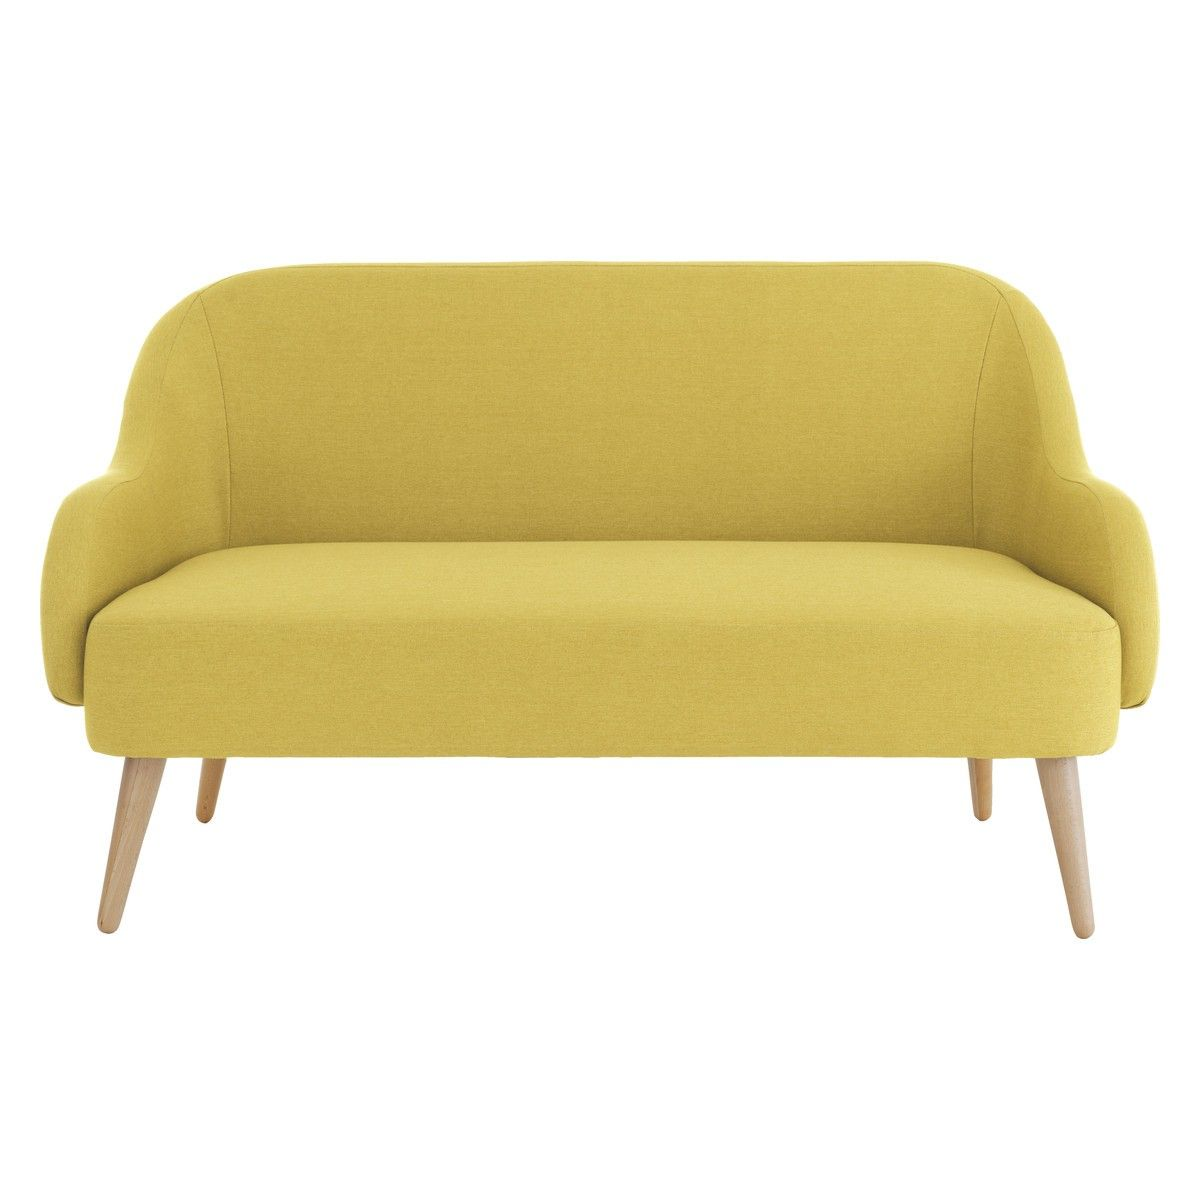 Sofas Fabulous Two Seater Settee 2 Under 200 Most Small Sofa